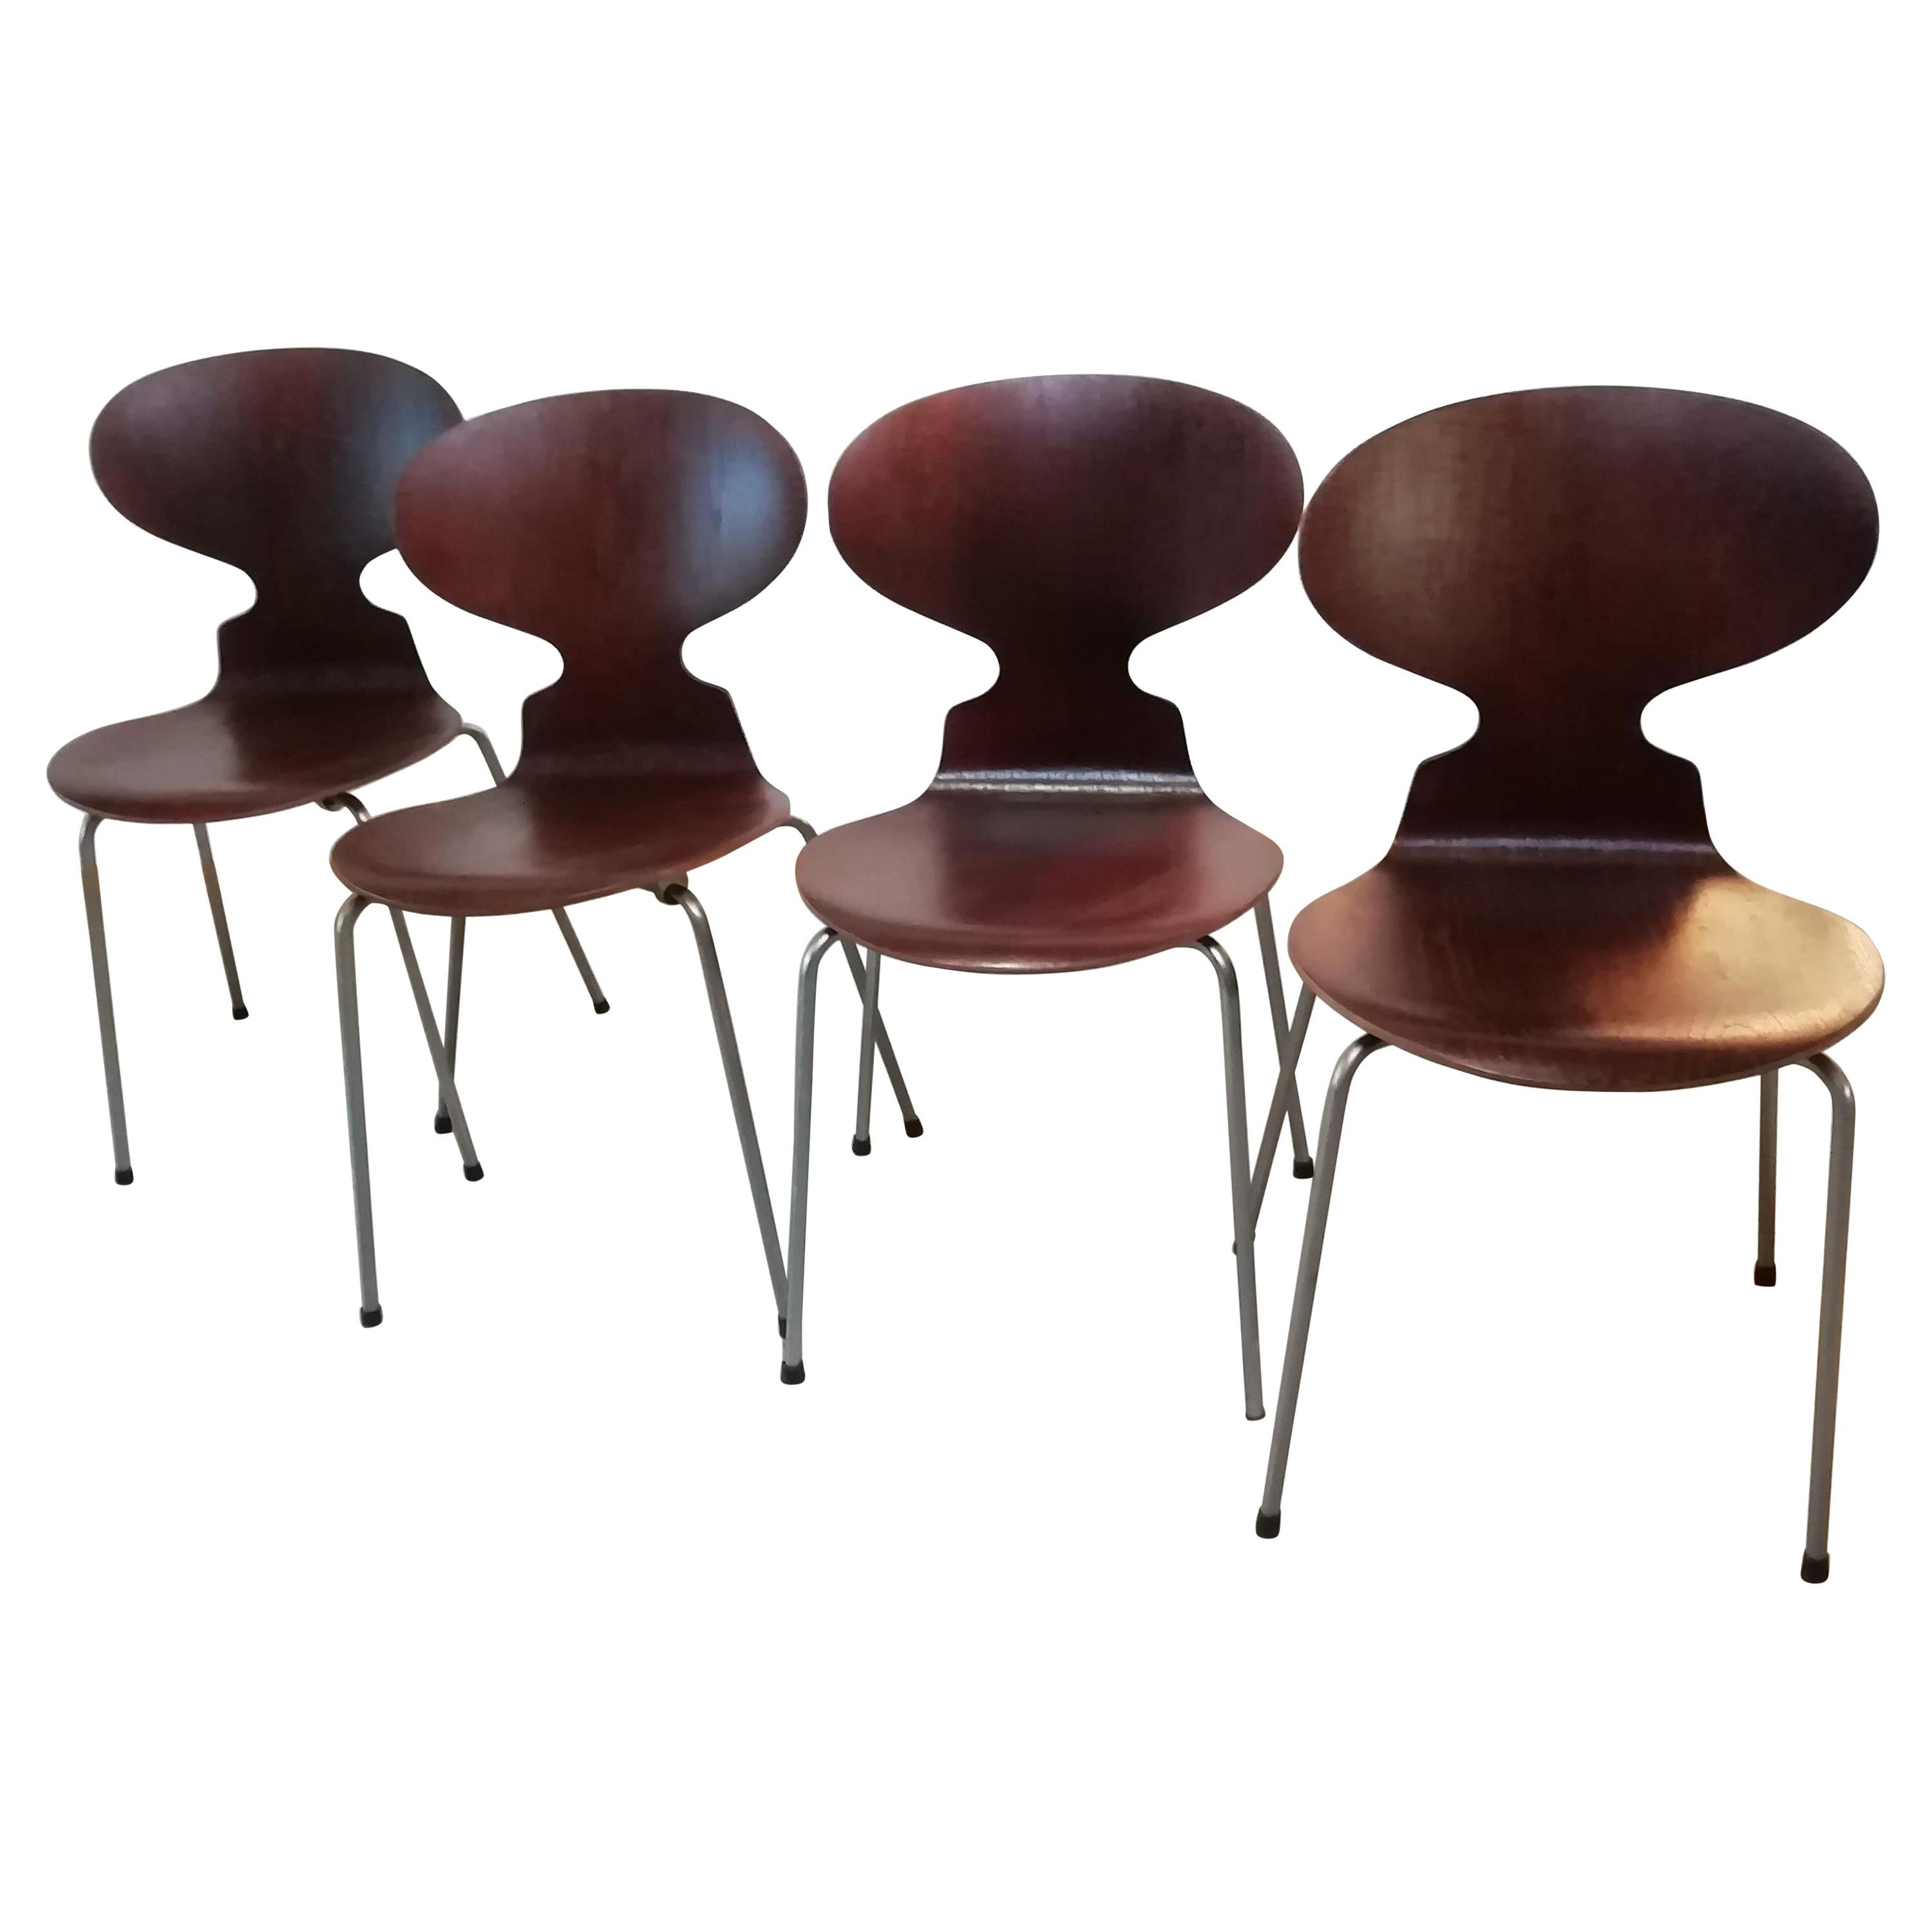 20th Century Ant Dining Chairs by Arne Jacobsen Fritz Hansen, 1950s, Set of 4